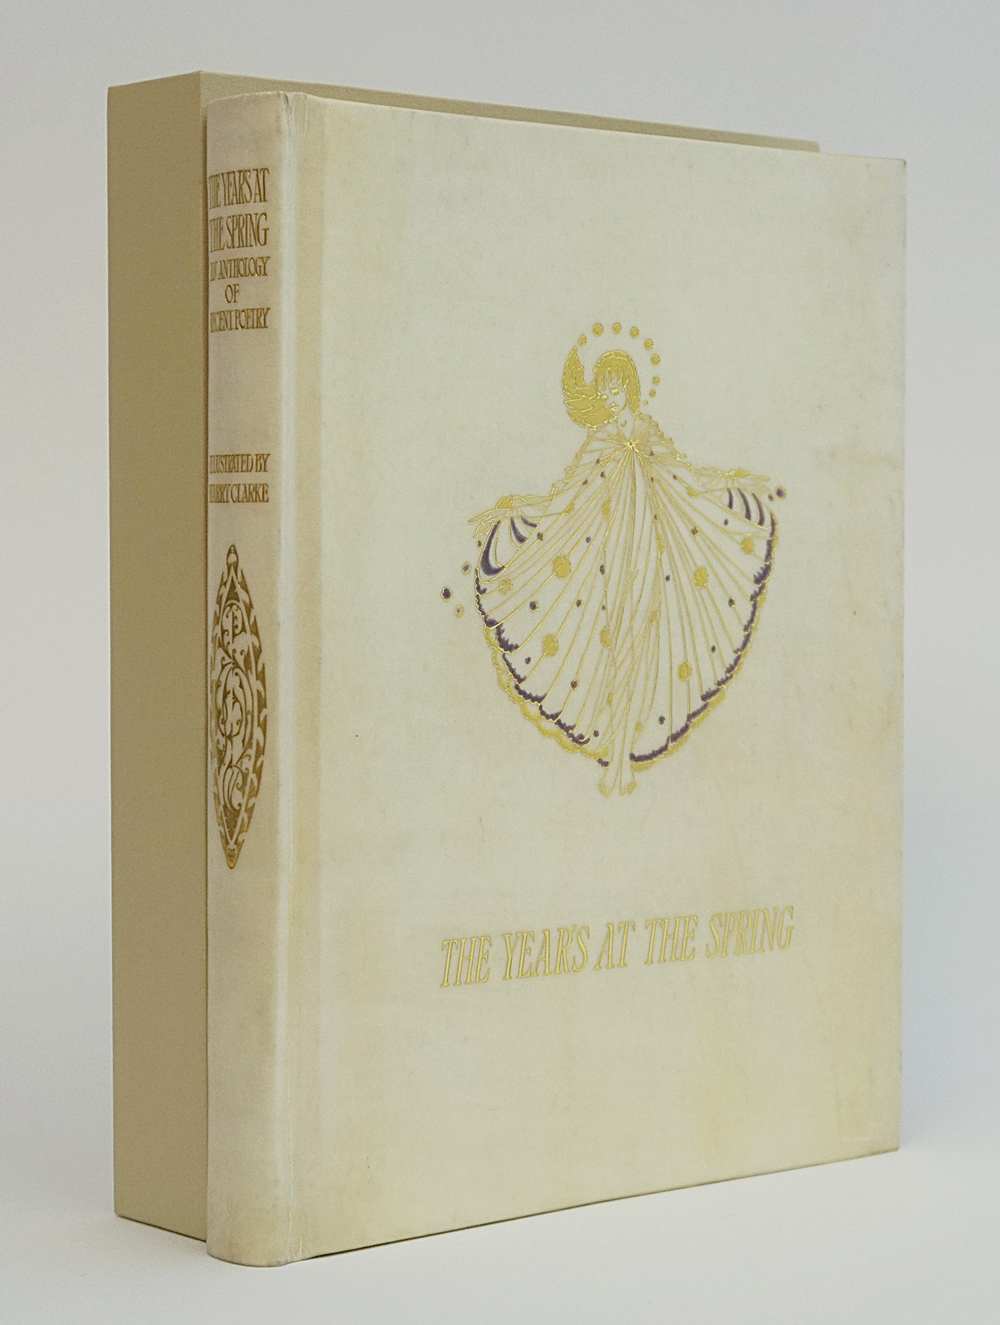 The Years at the Spring. An Anthology of Recent Poetry. London: George G. Harrap & Co. Ltd., 1920.